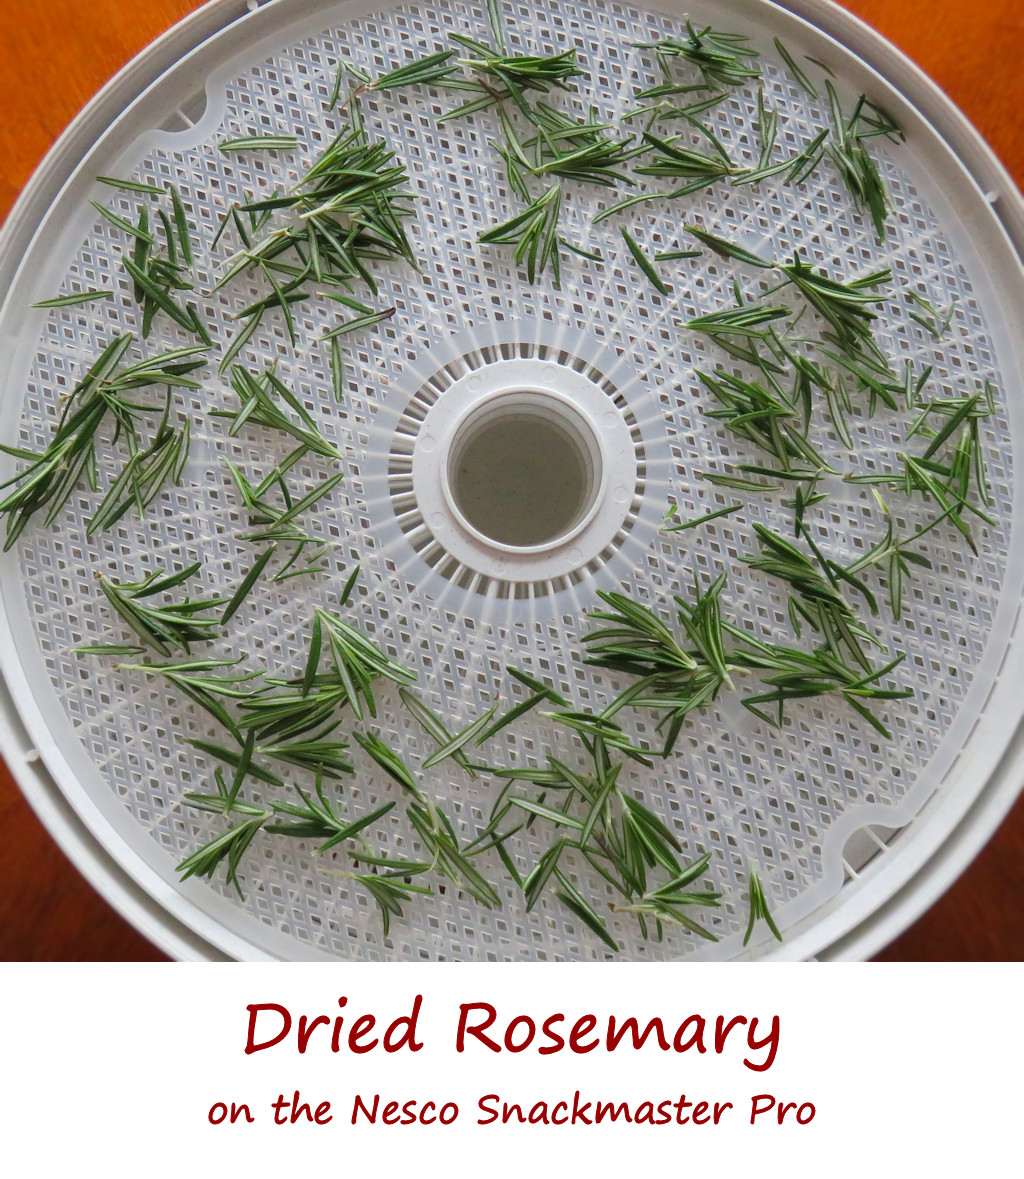 Dried Rosemary on the Nesco Snackmaster Pro